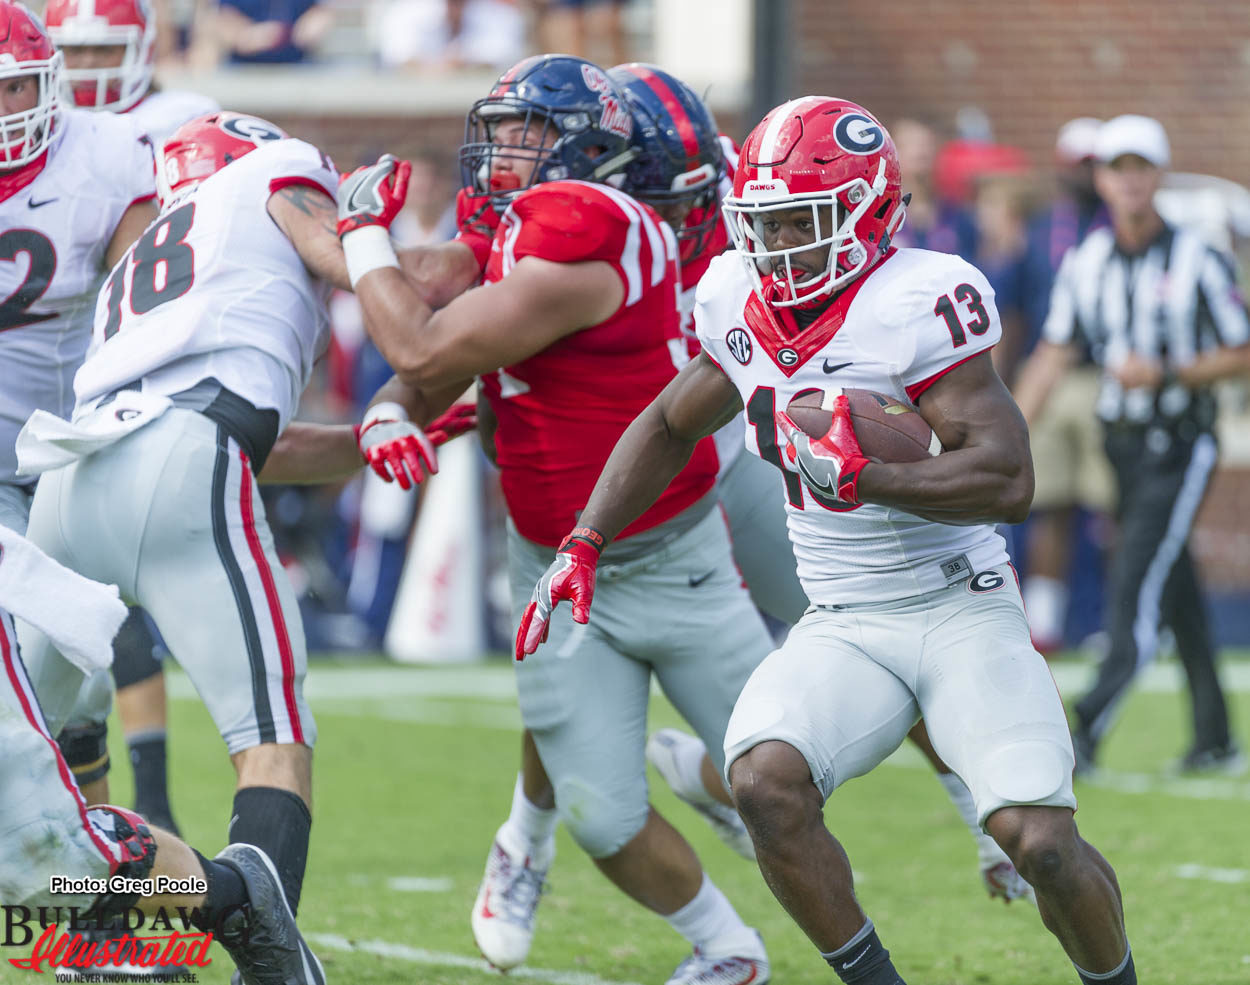 Good to see Elijah Holyfield (13) run the ball, Isaac Nauta (18) sets the edge